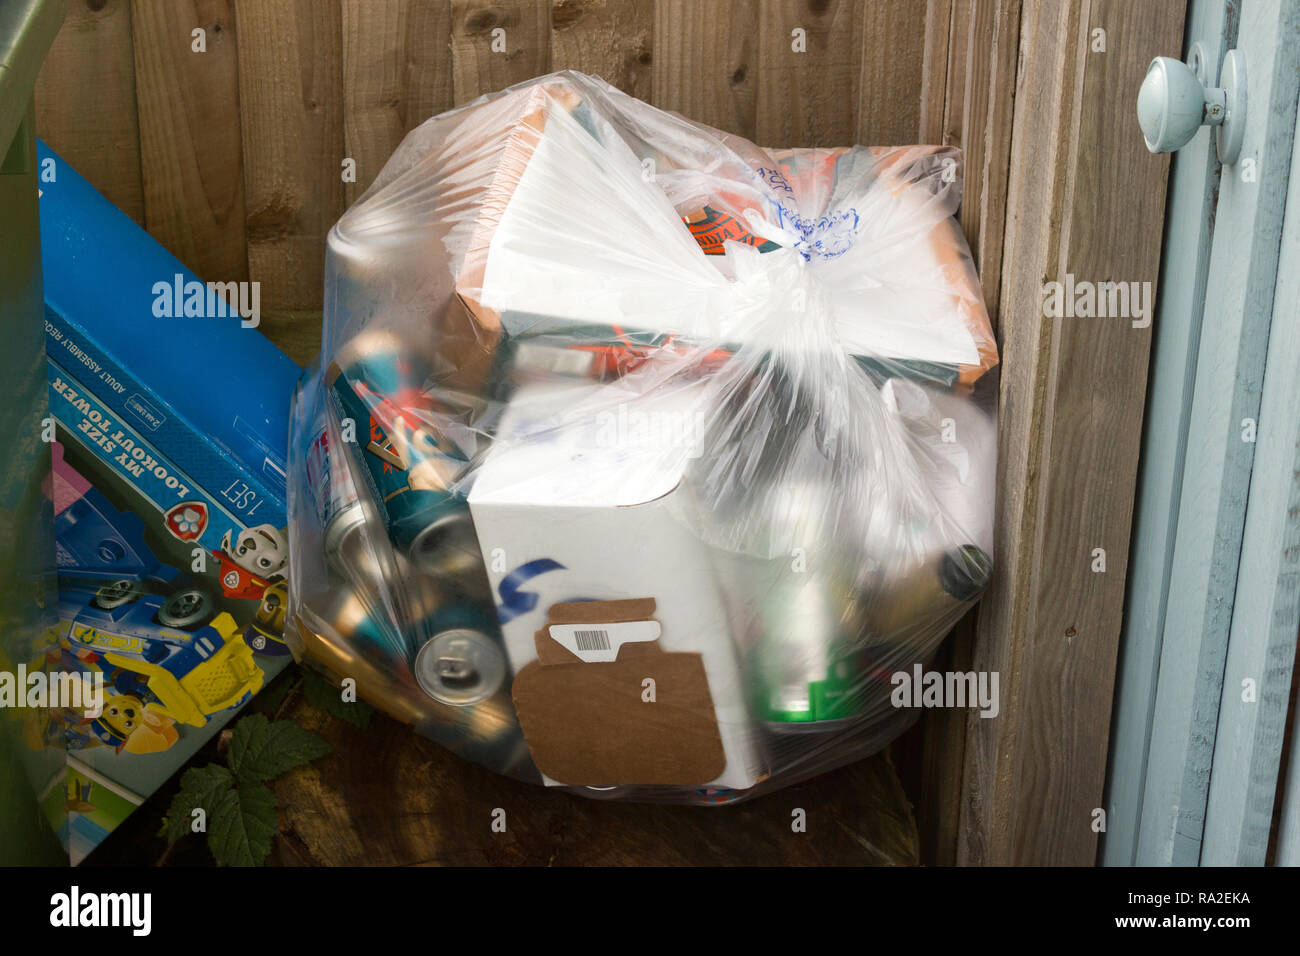 Bag of domestic rubbish awaiting collection - Stock Image